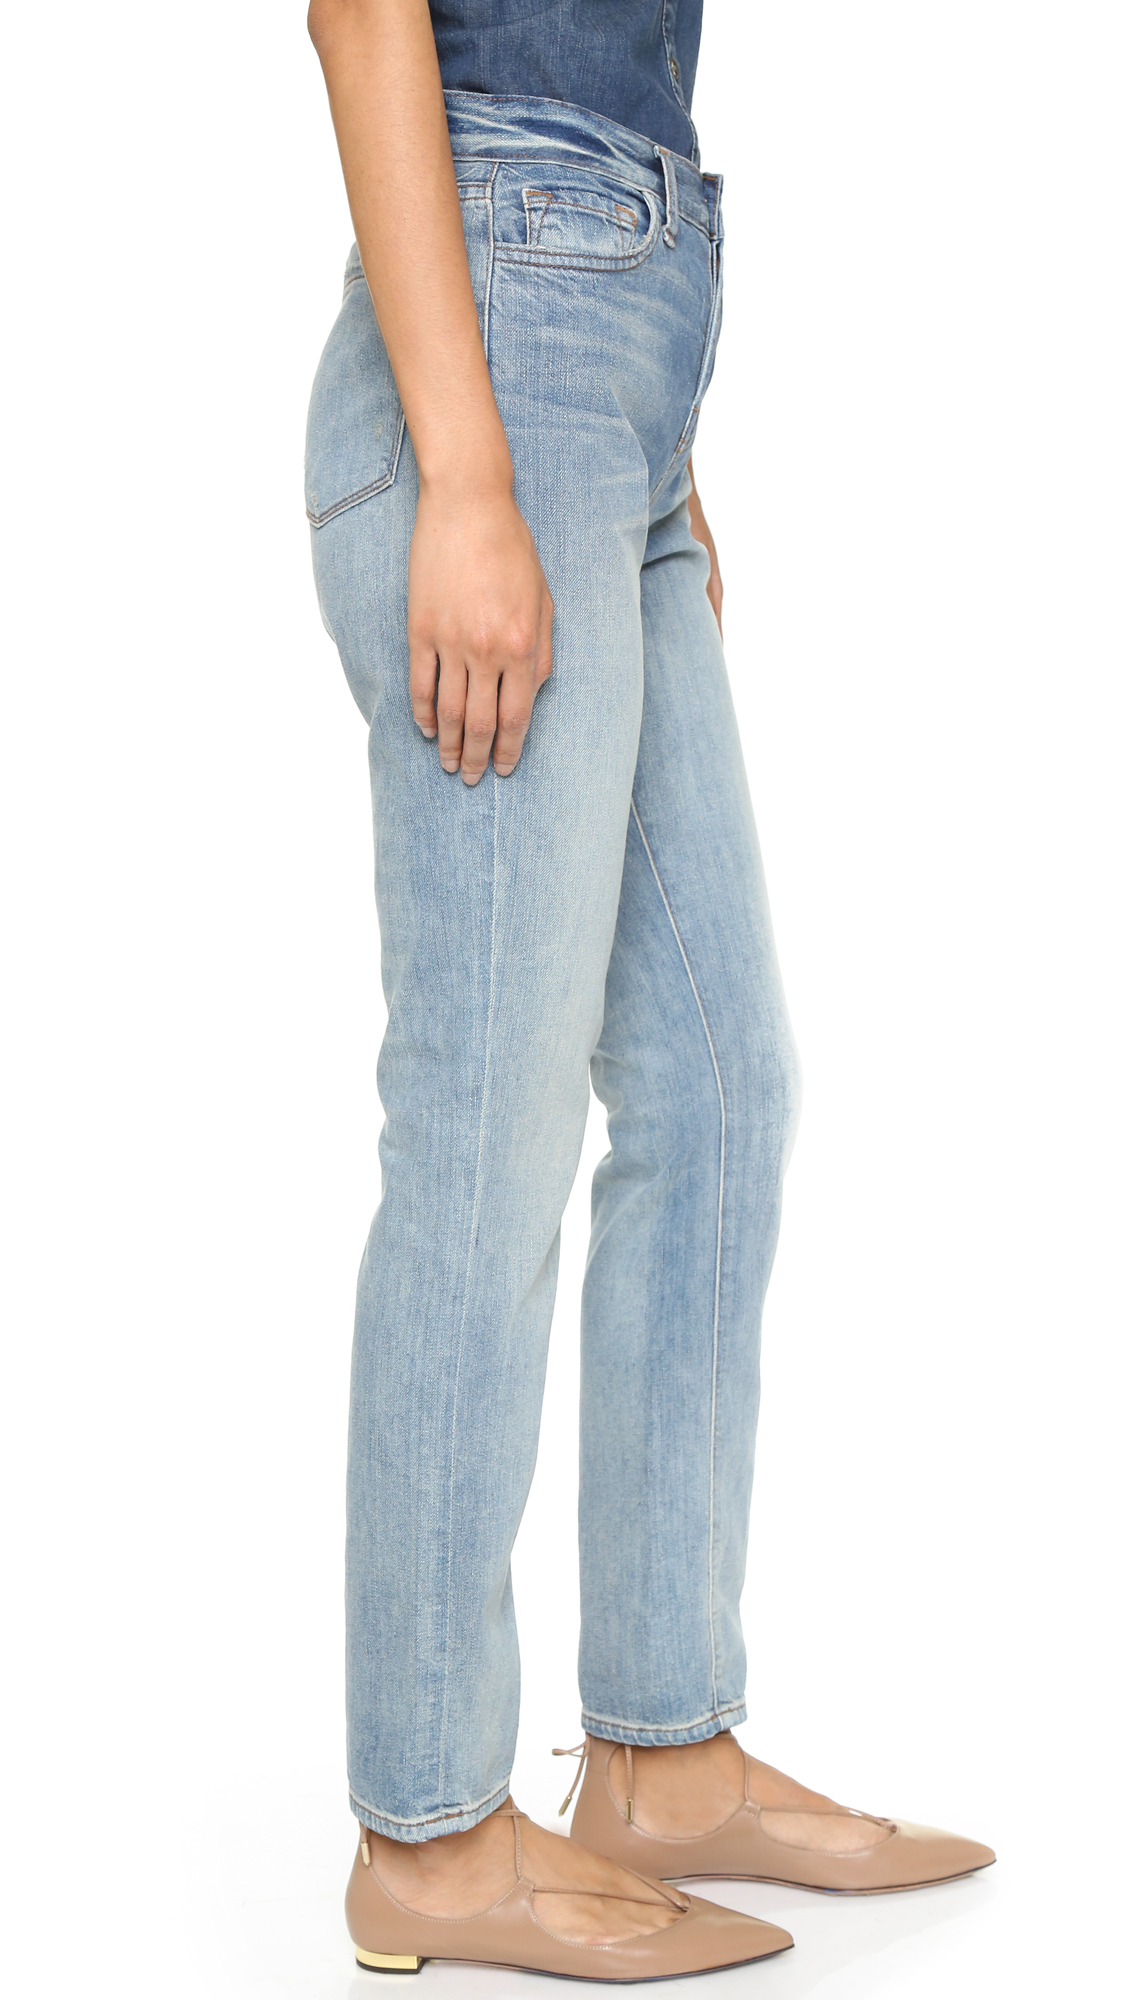 J brand Arley High Rise Boyfriend Jeans in Blue | Lyst